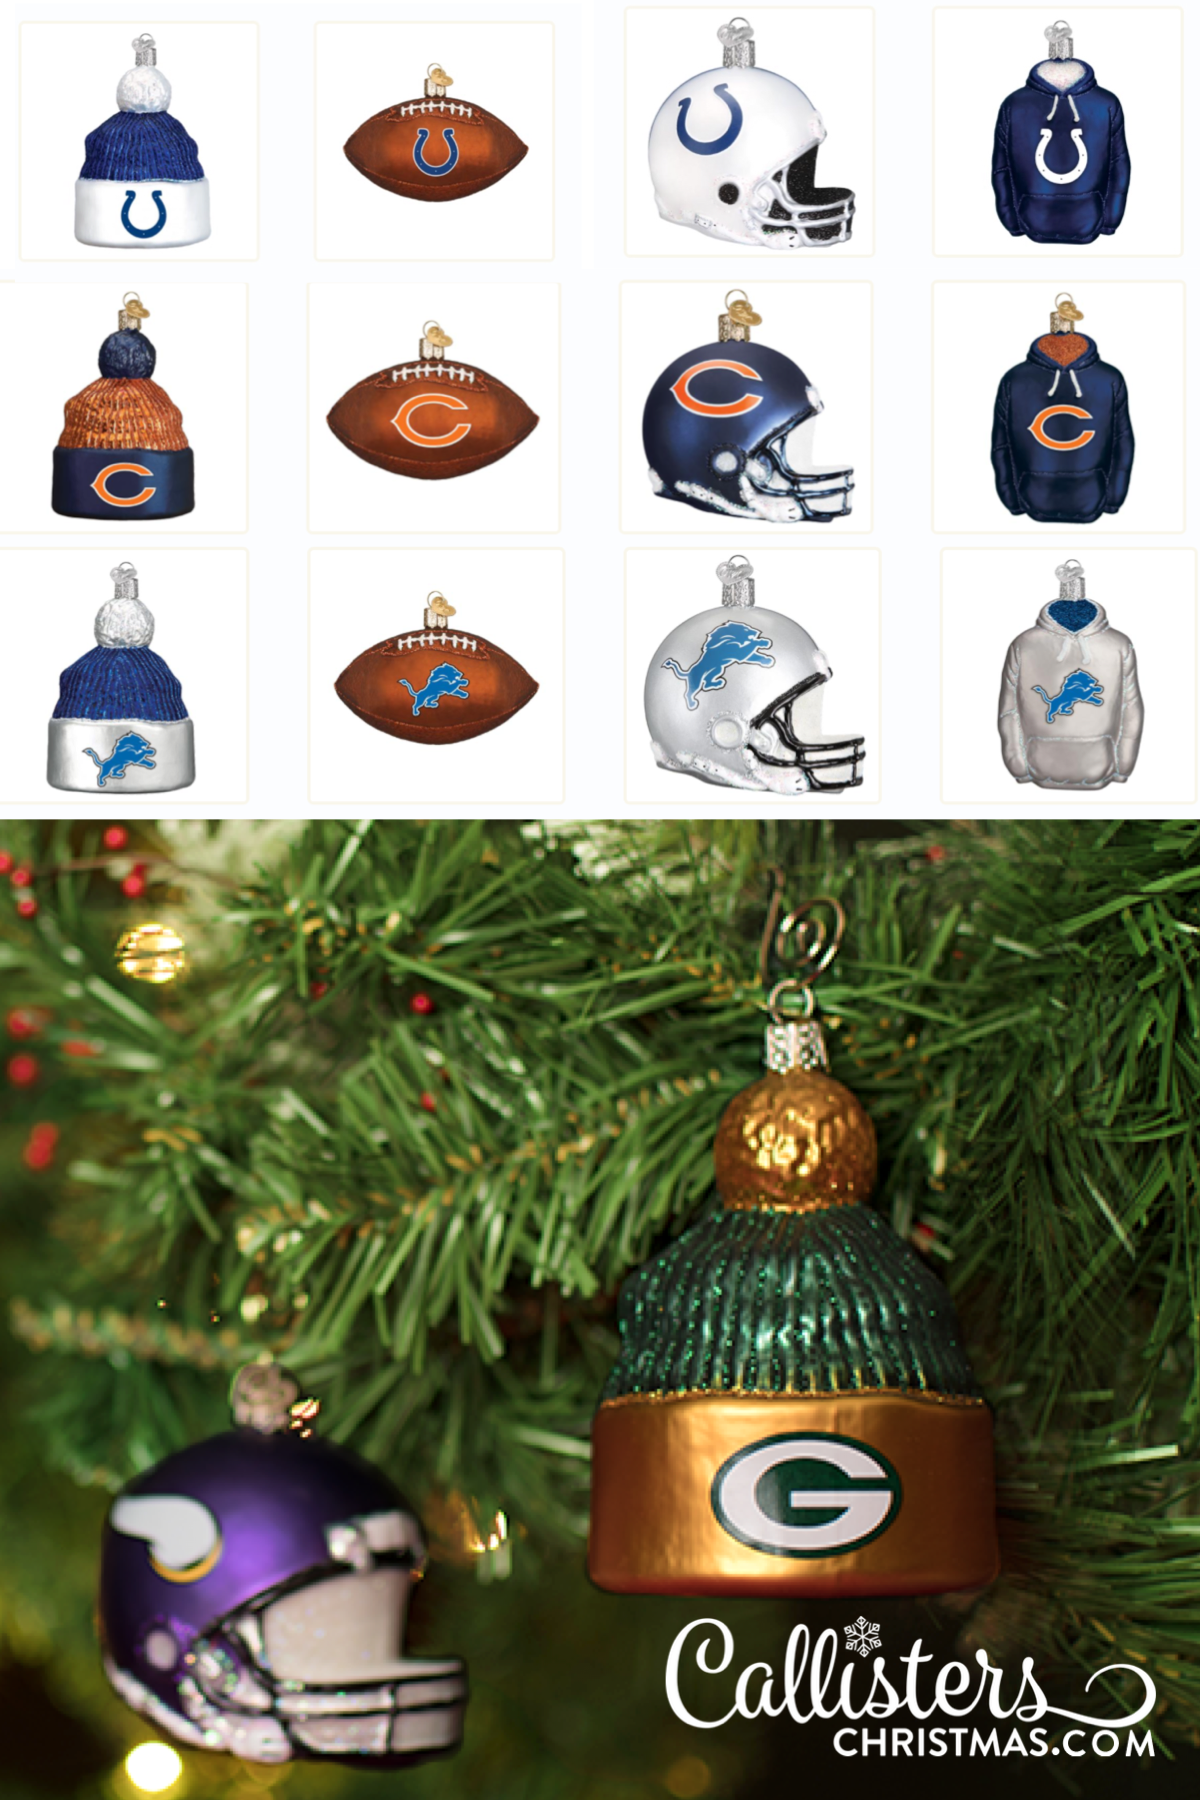 Christmas Day Nfl 2020 NFL Ornaments | Football Team Ornaments | Callisters Christmas in